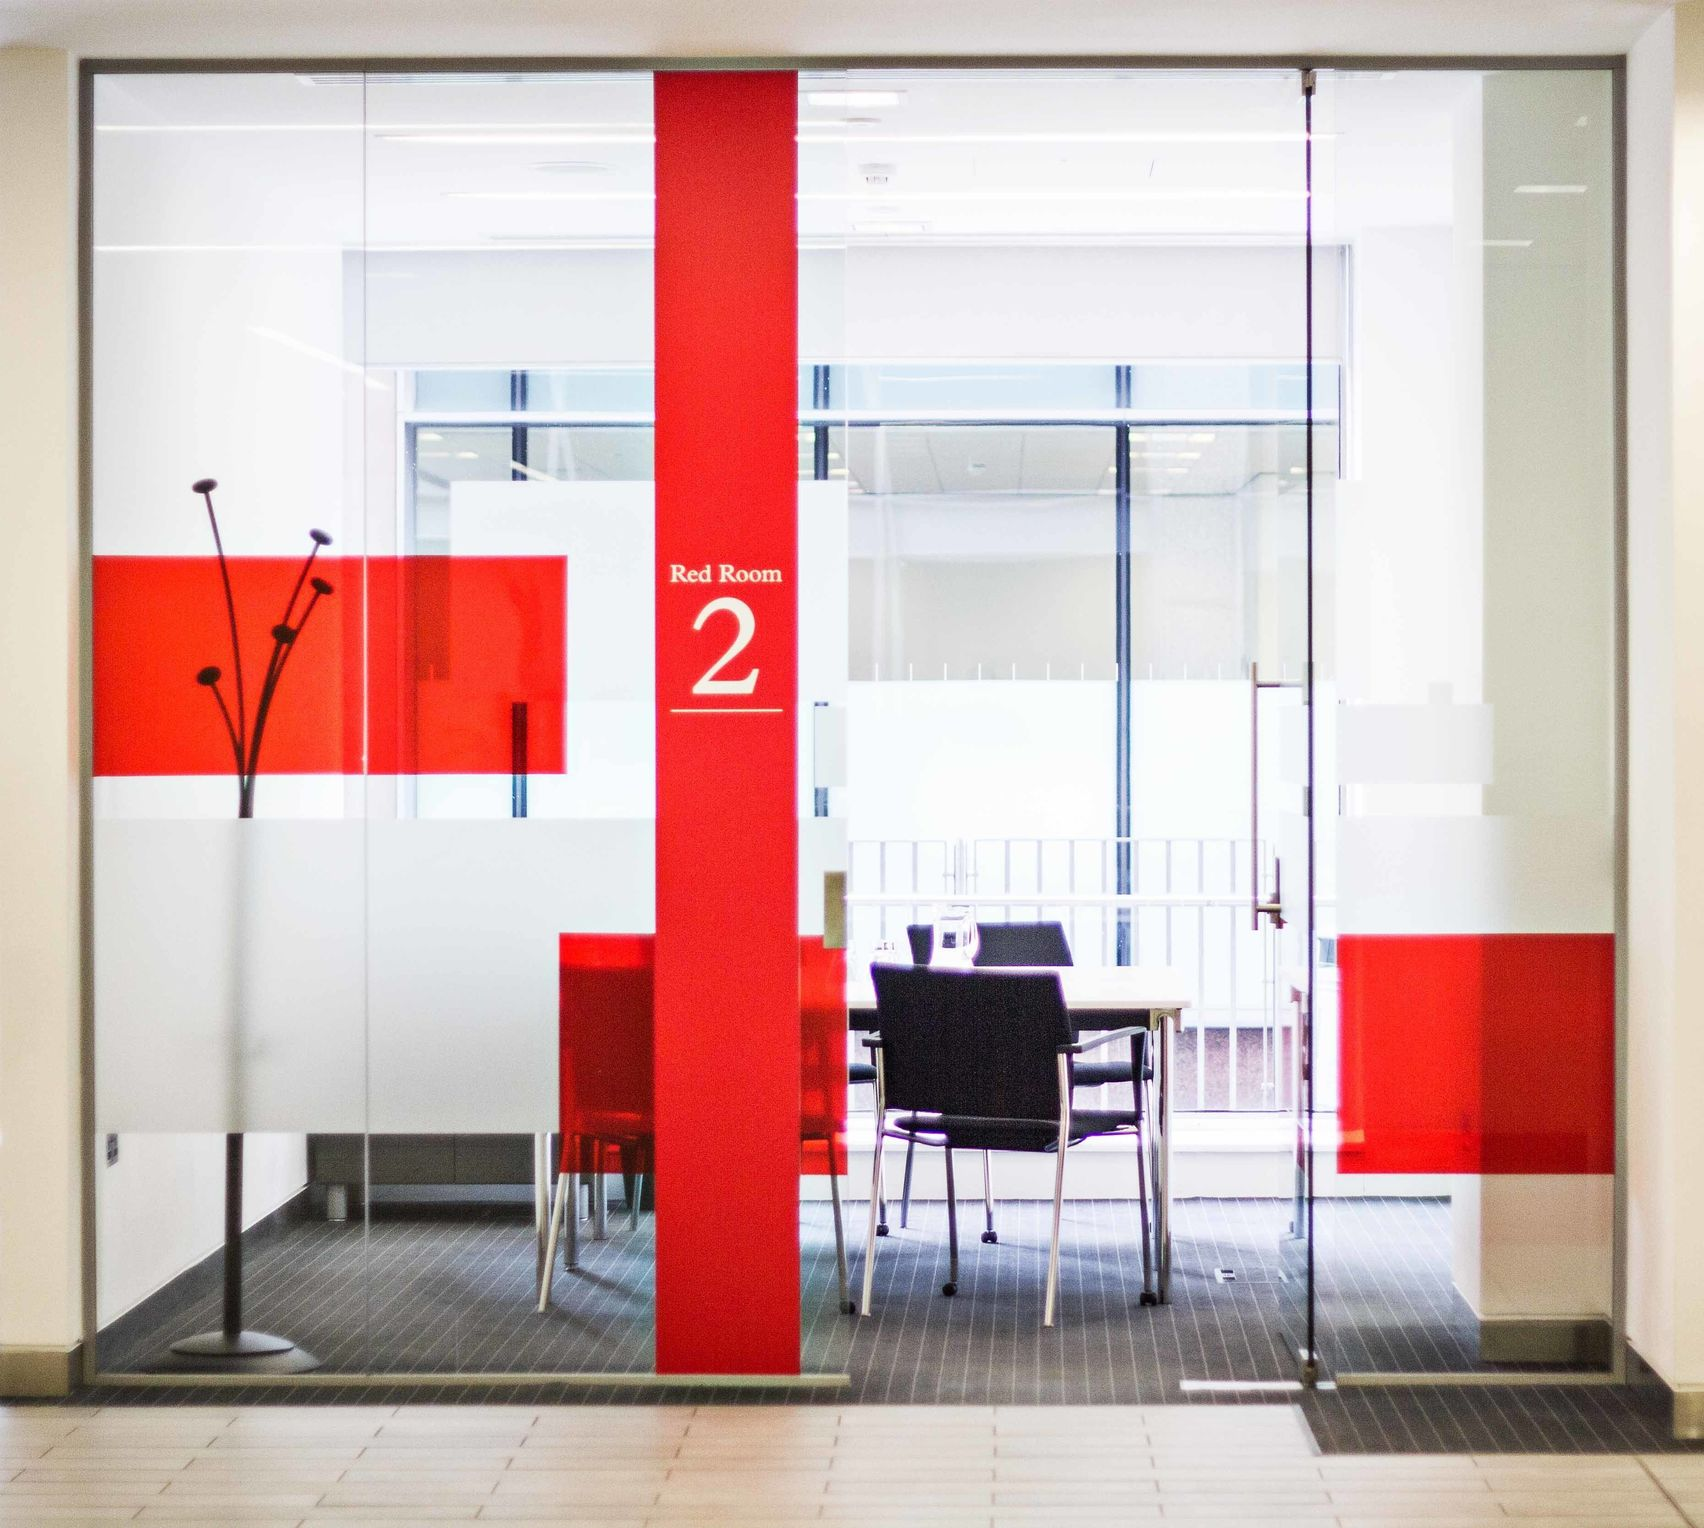 Room 2, The Plaza